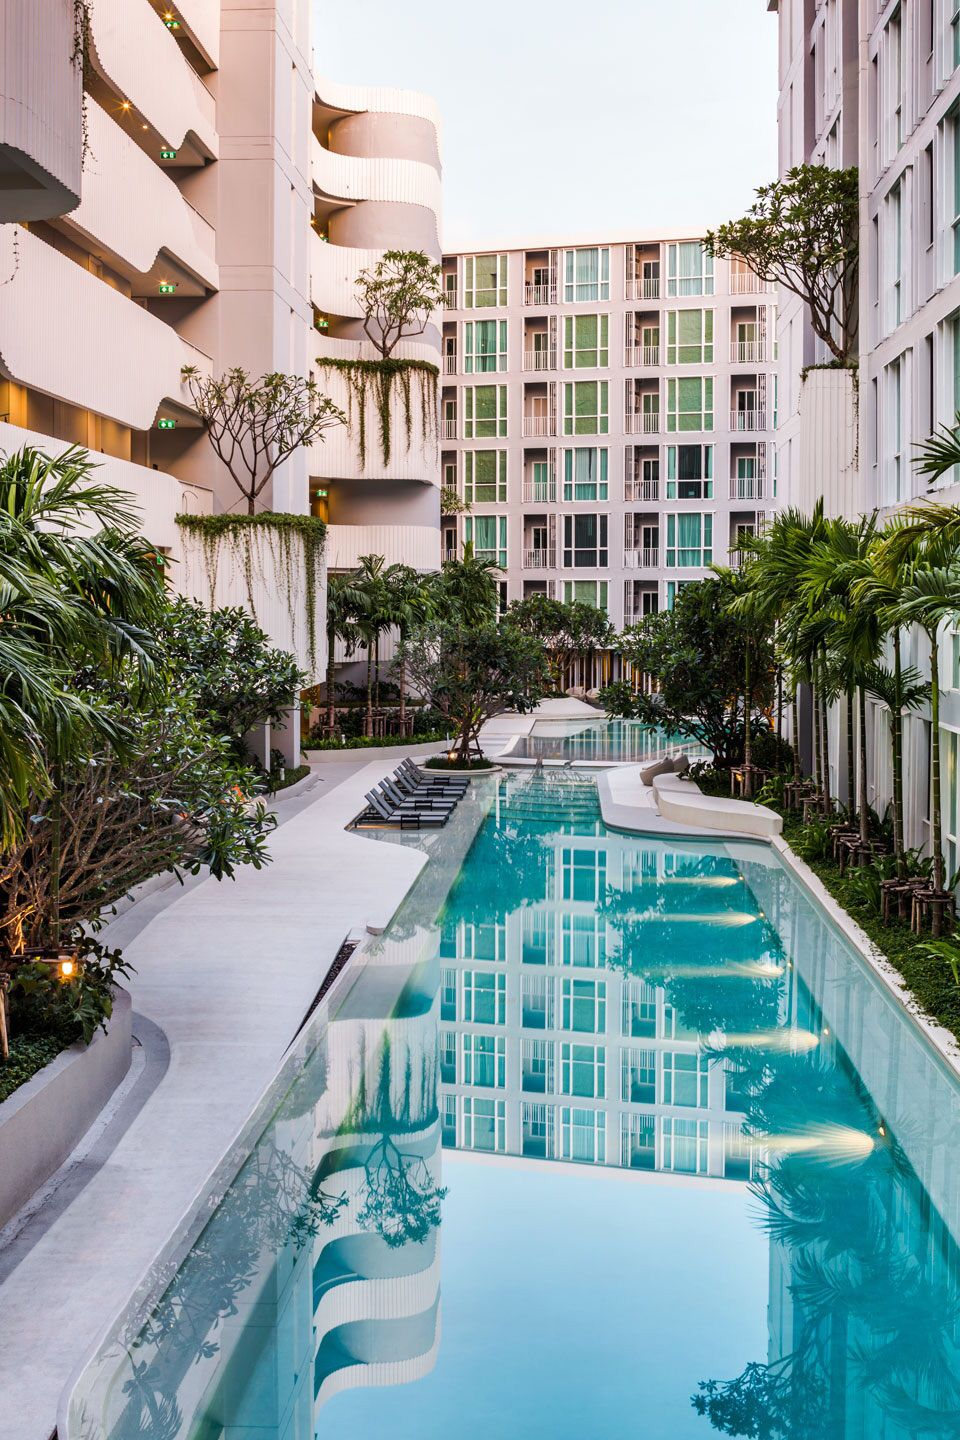 46 futuristic swimming pools - The Base Downtown Phuket Architectural And Landscape Design By Opnbx Openbox Architects Ltd City Condominium Located